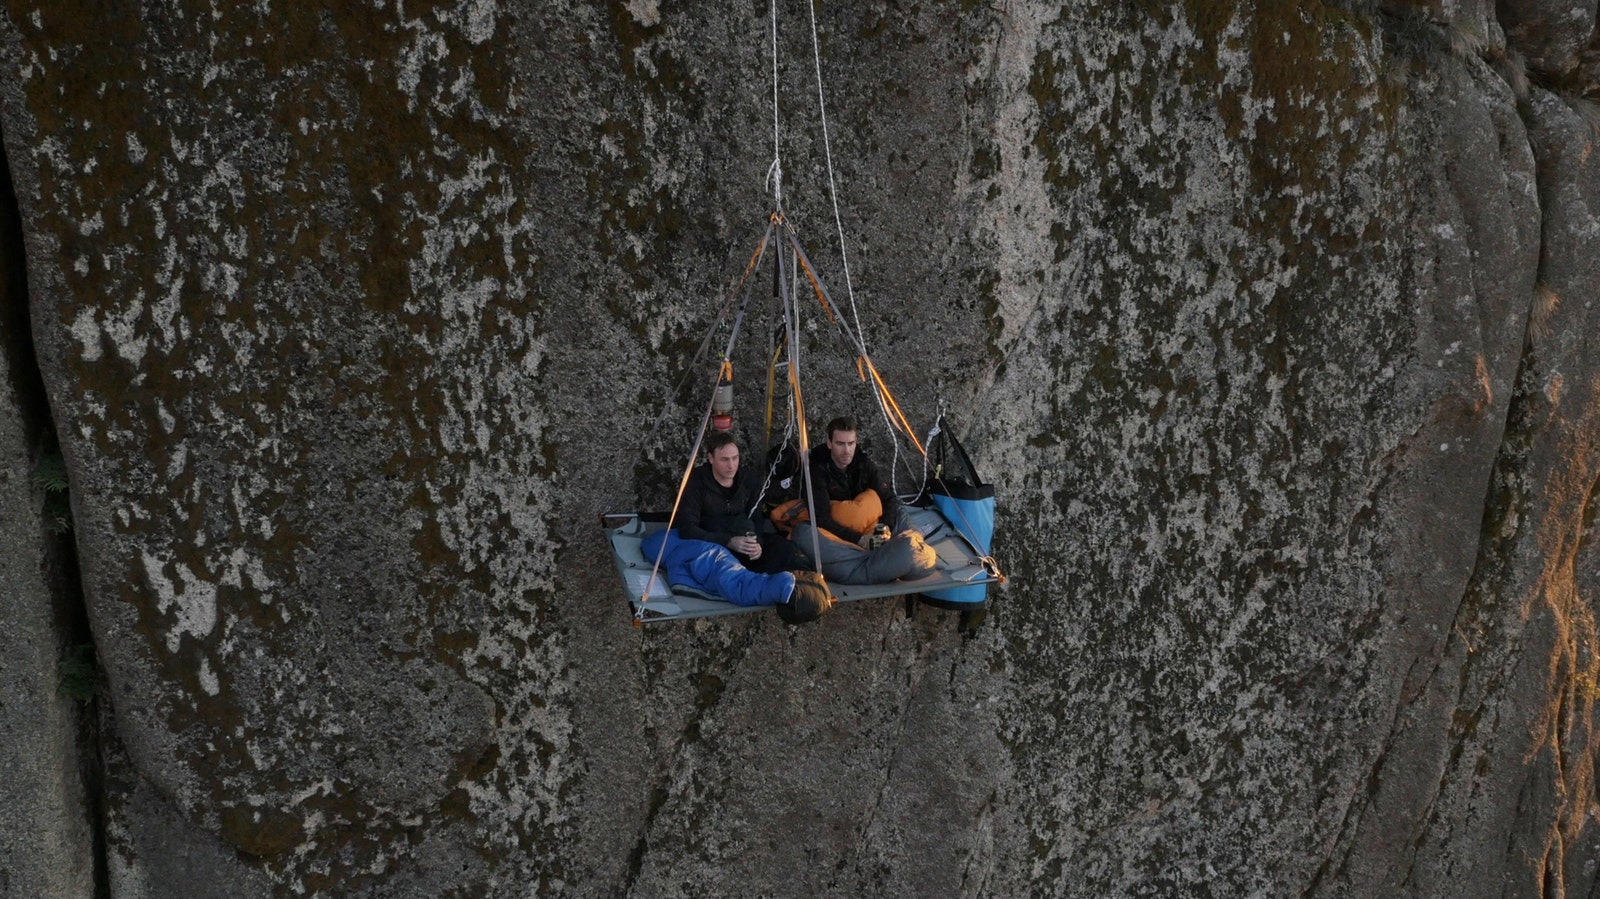 Unleashed-Unlimited Sitting on Portaledge with Brew